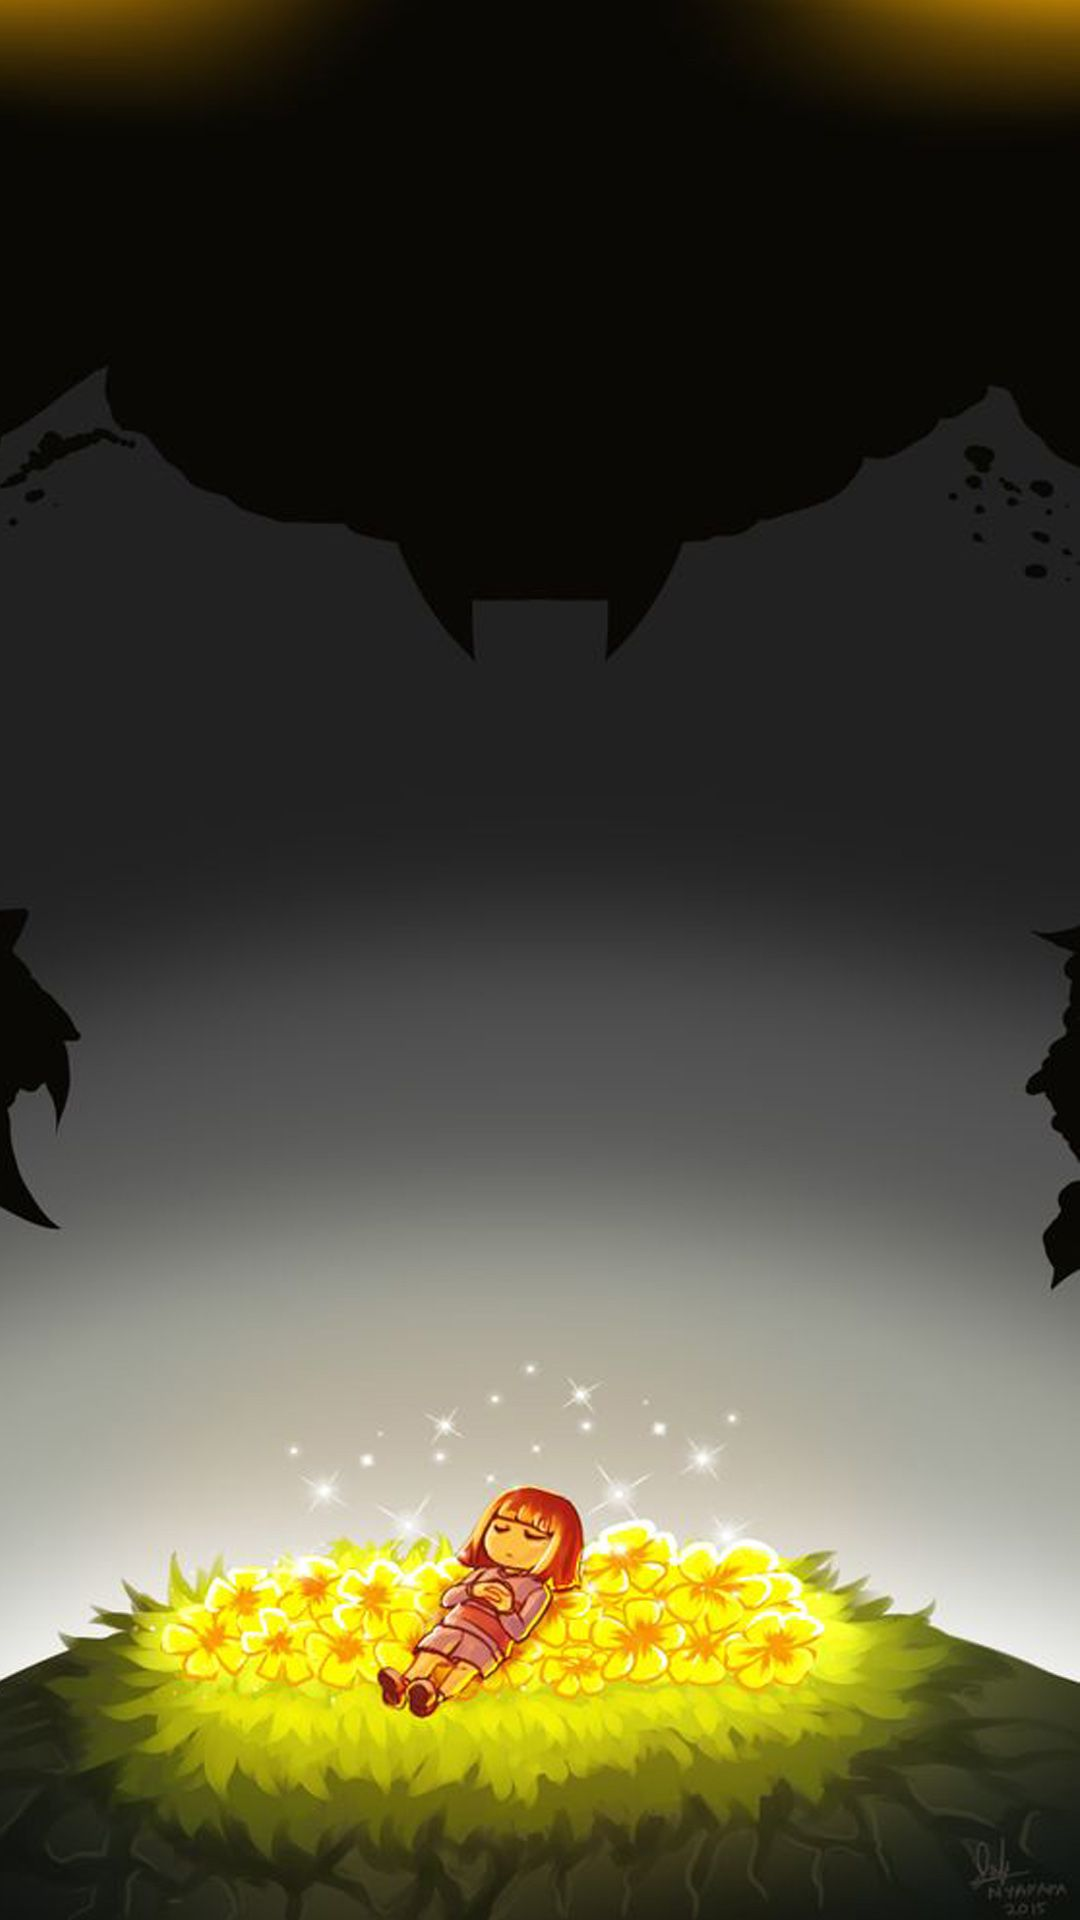 Undertale Wallpaper For Iphone 5 With Id 11162 Free Iphone